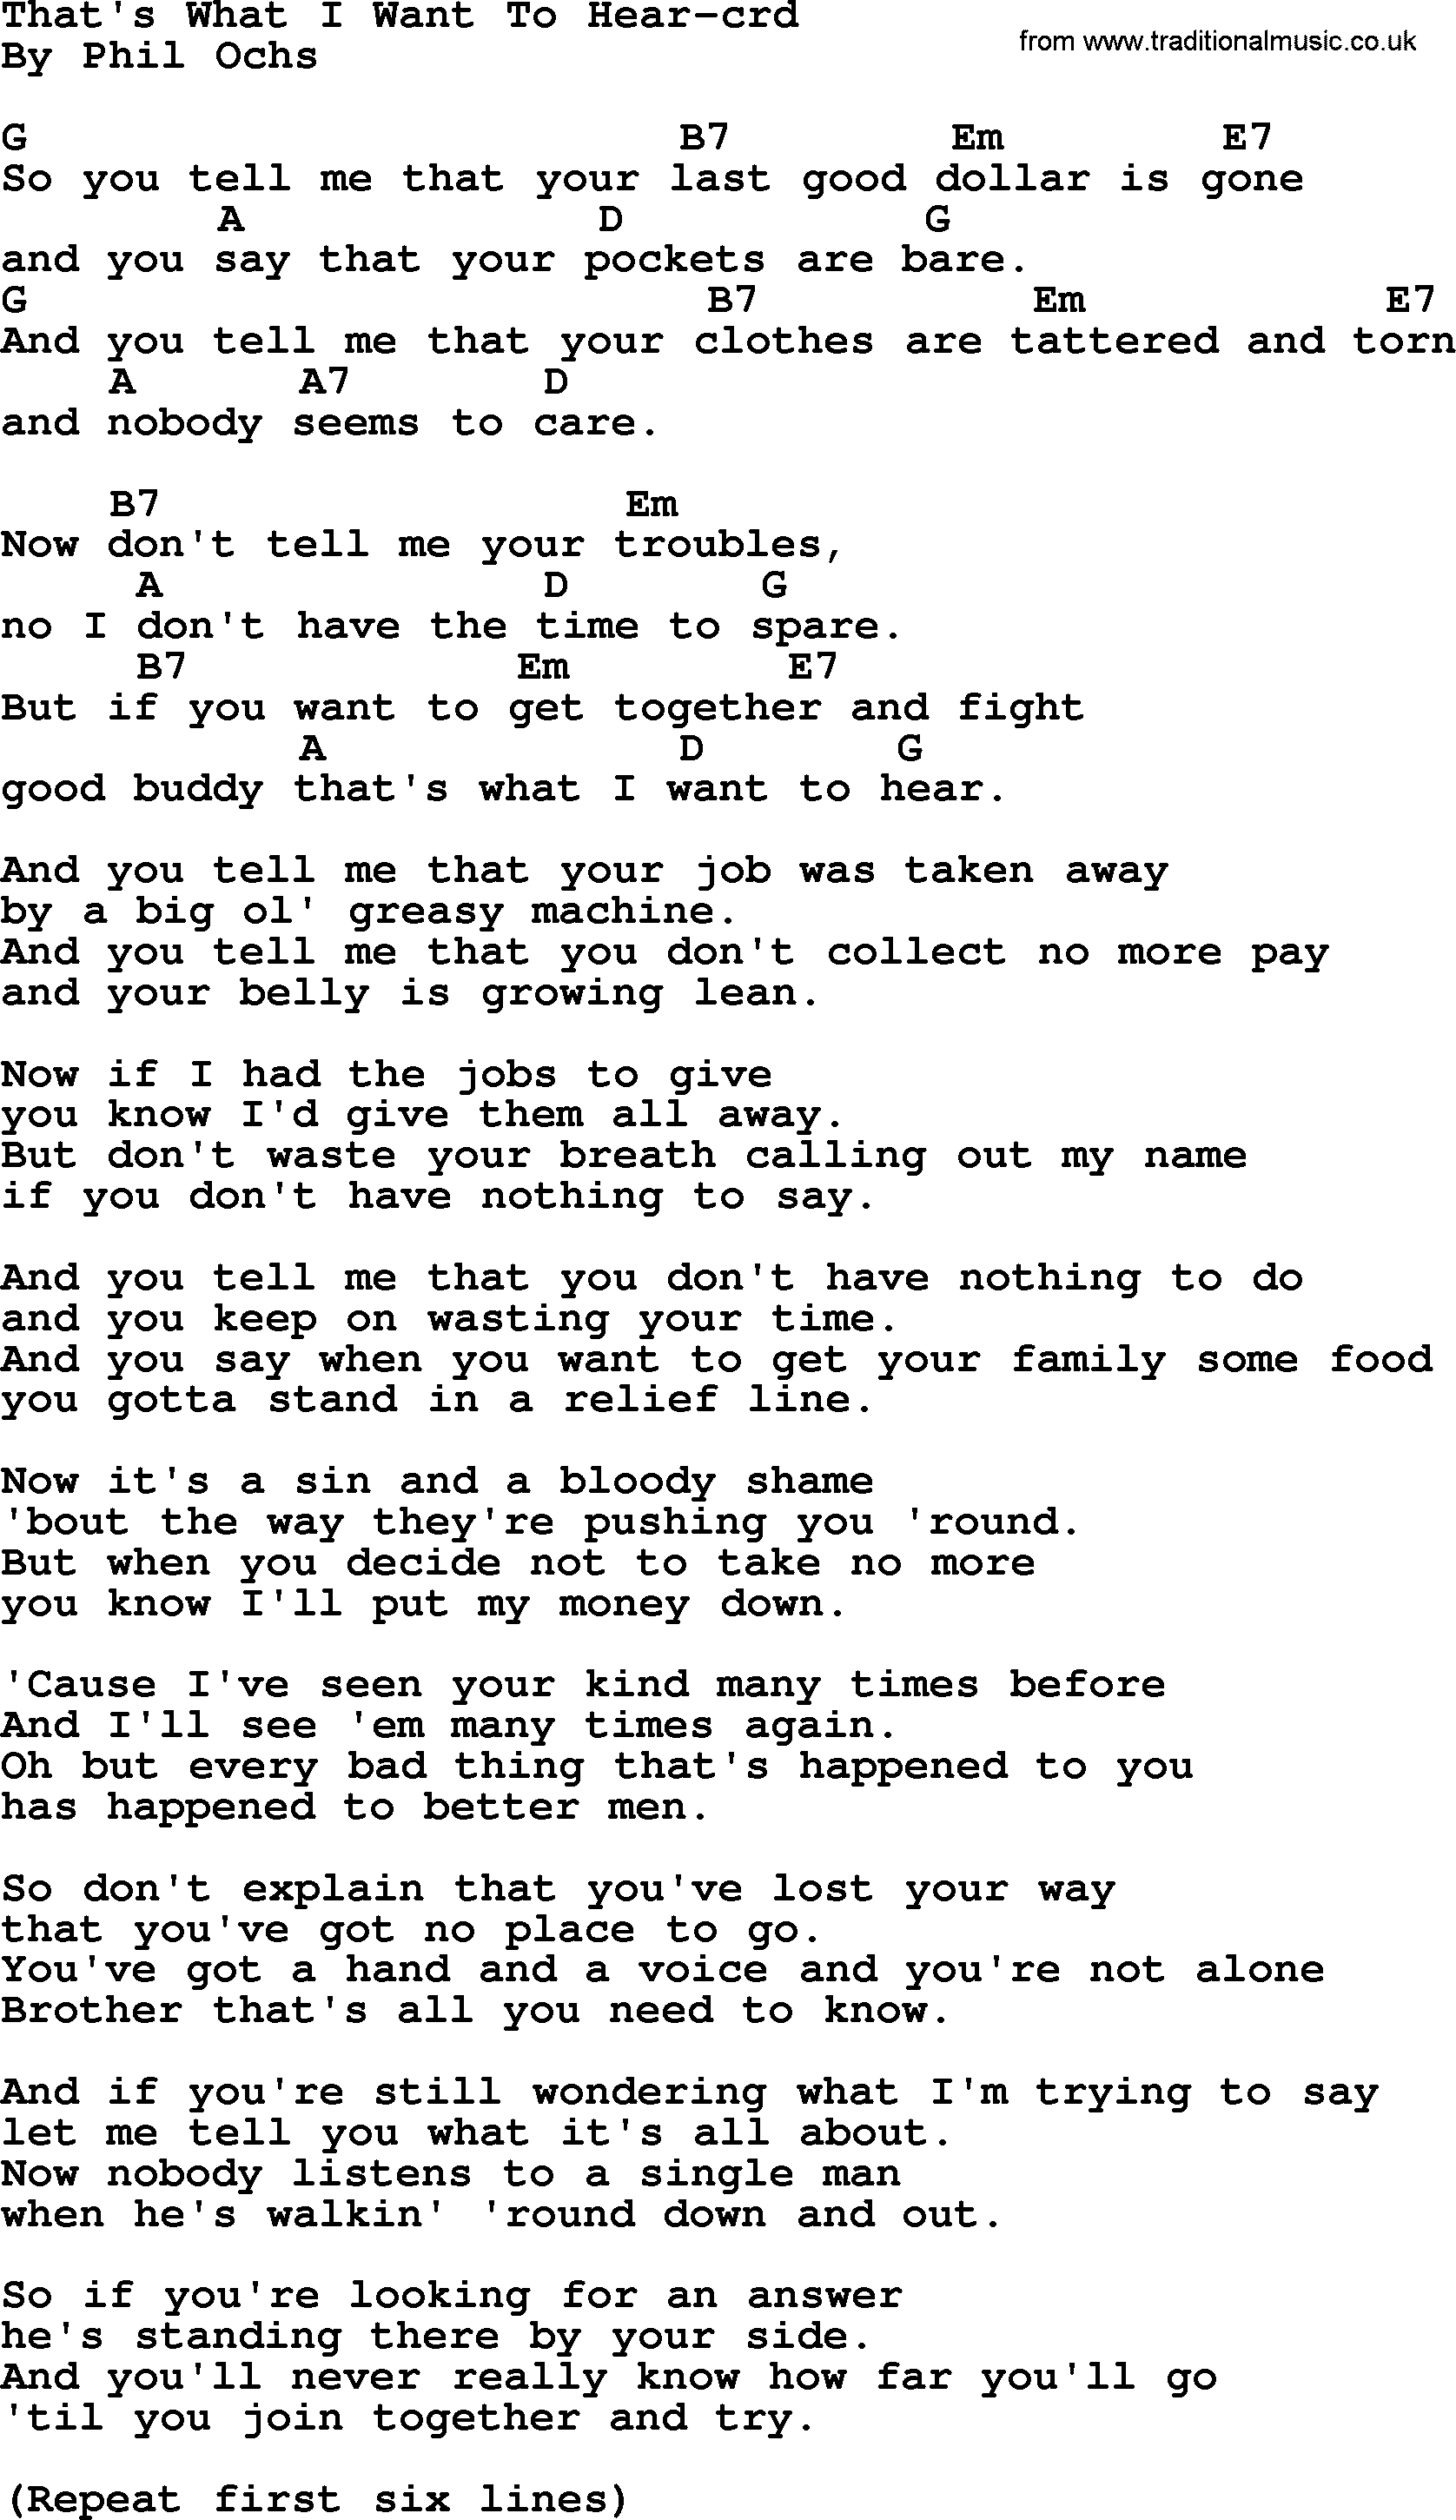 Phil Ochs Song That S What I Want To Hear By Phil Ochs Lyrics And Chords Dylan Songs Lyrics